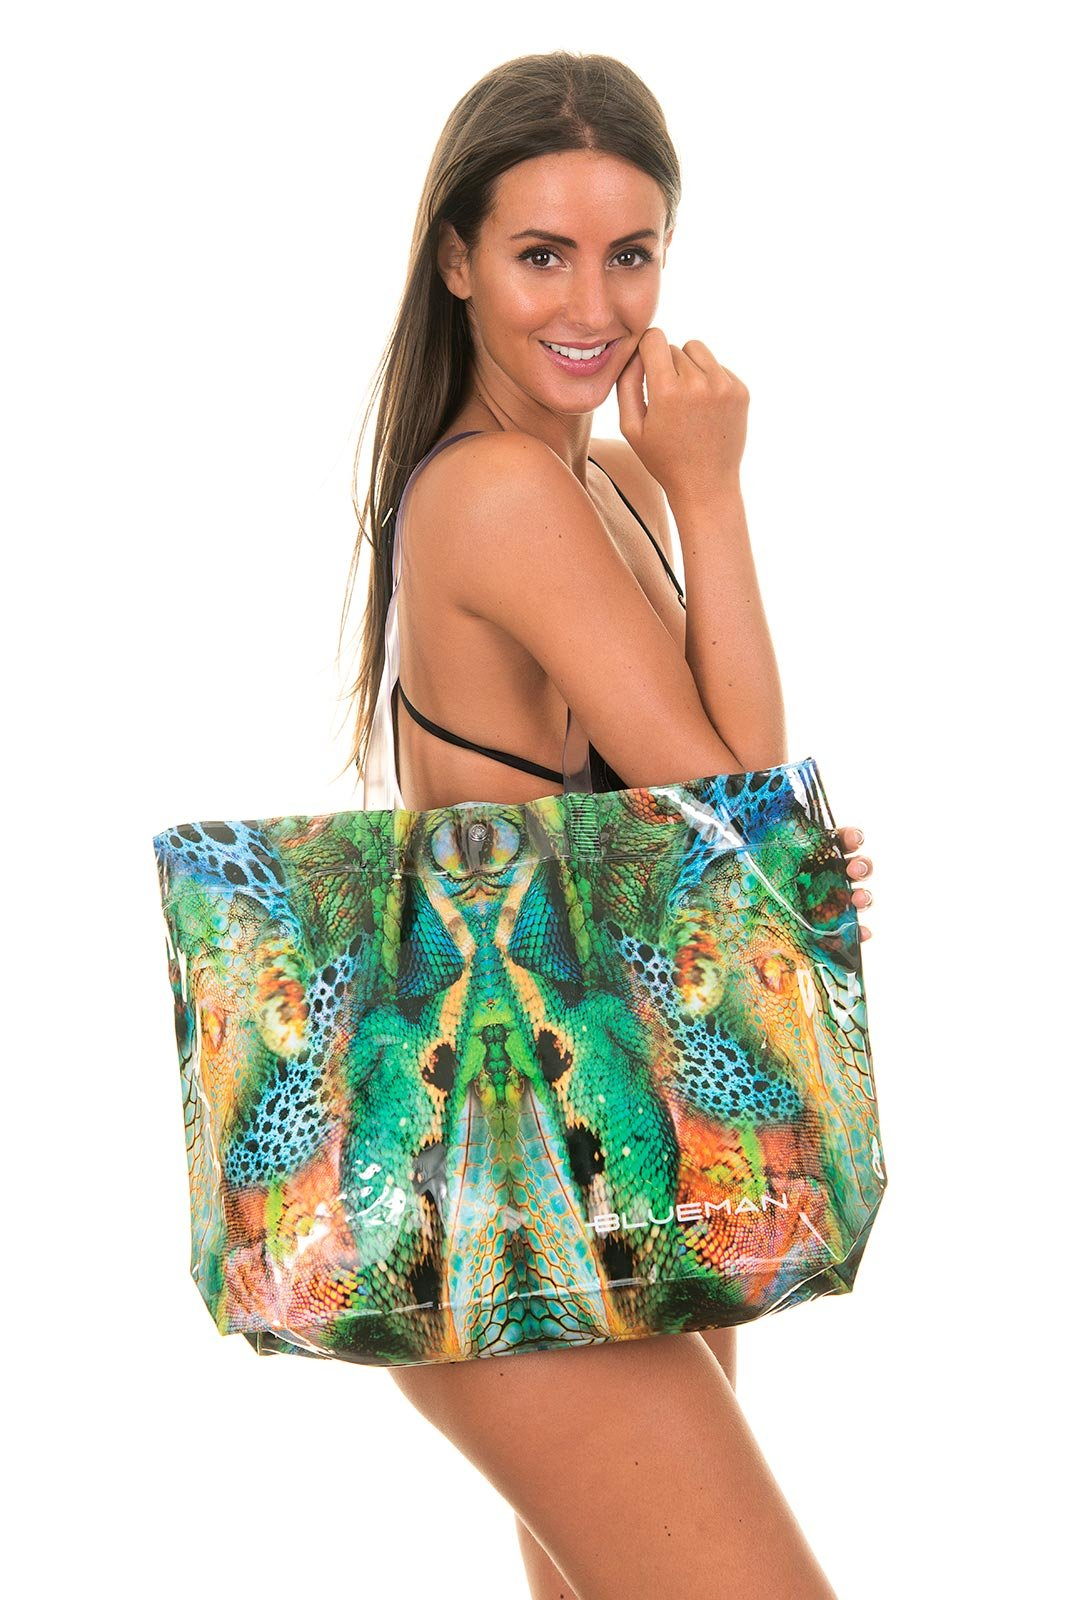 Blue Man Multi-coloured Animal Print Beach Tote Bag - Bolsa Skin